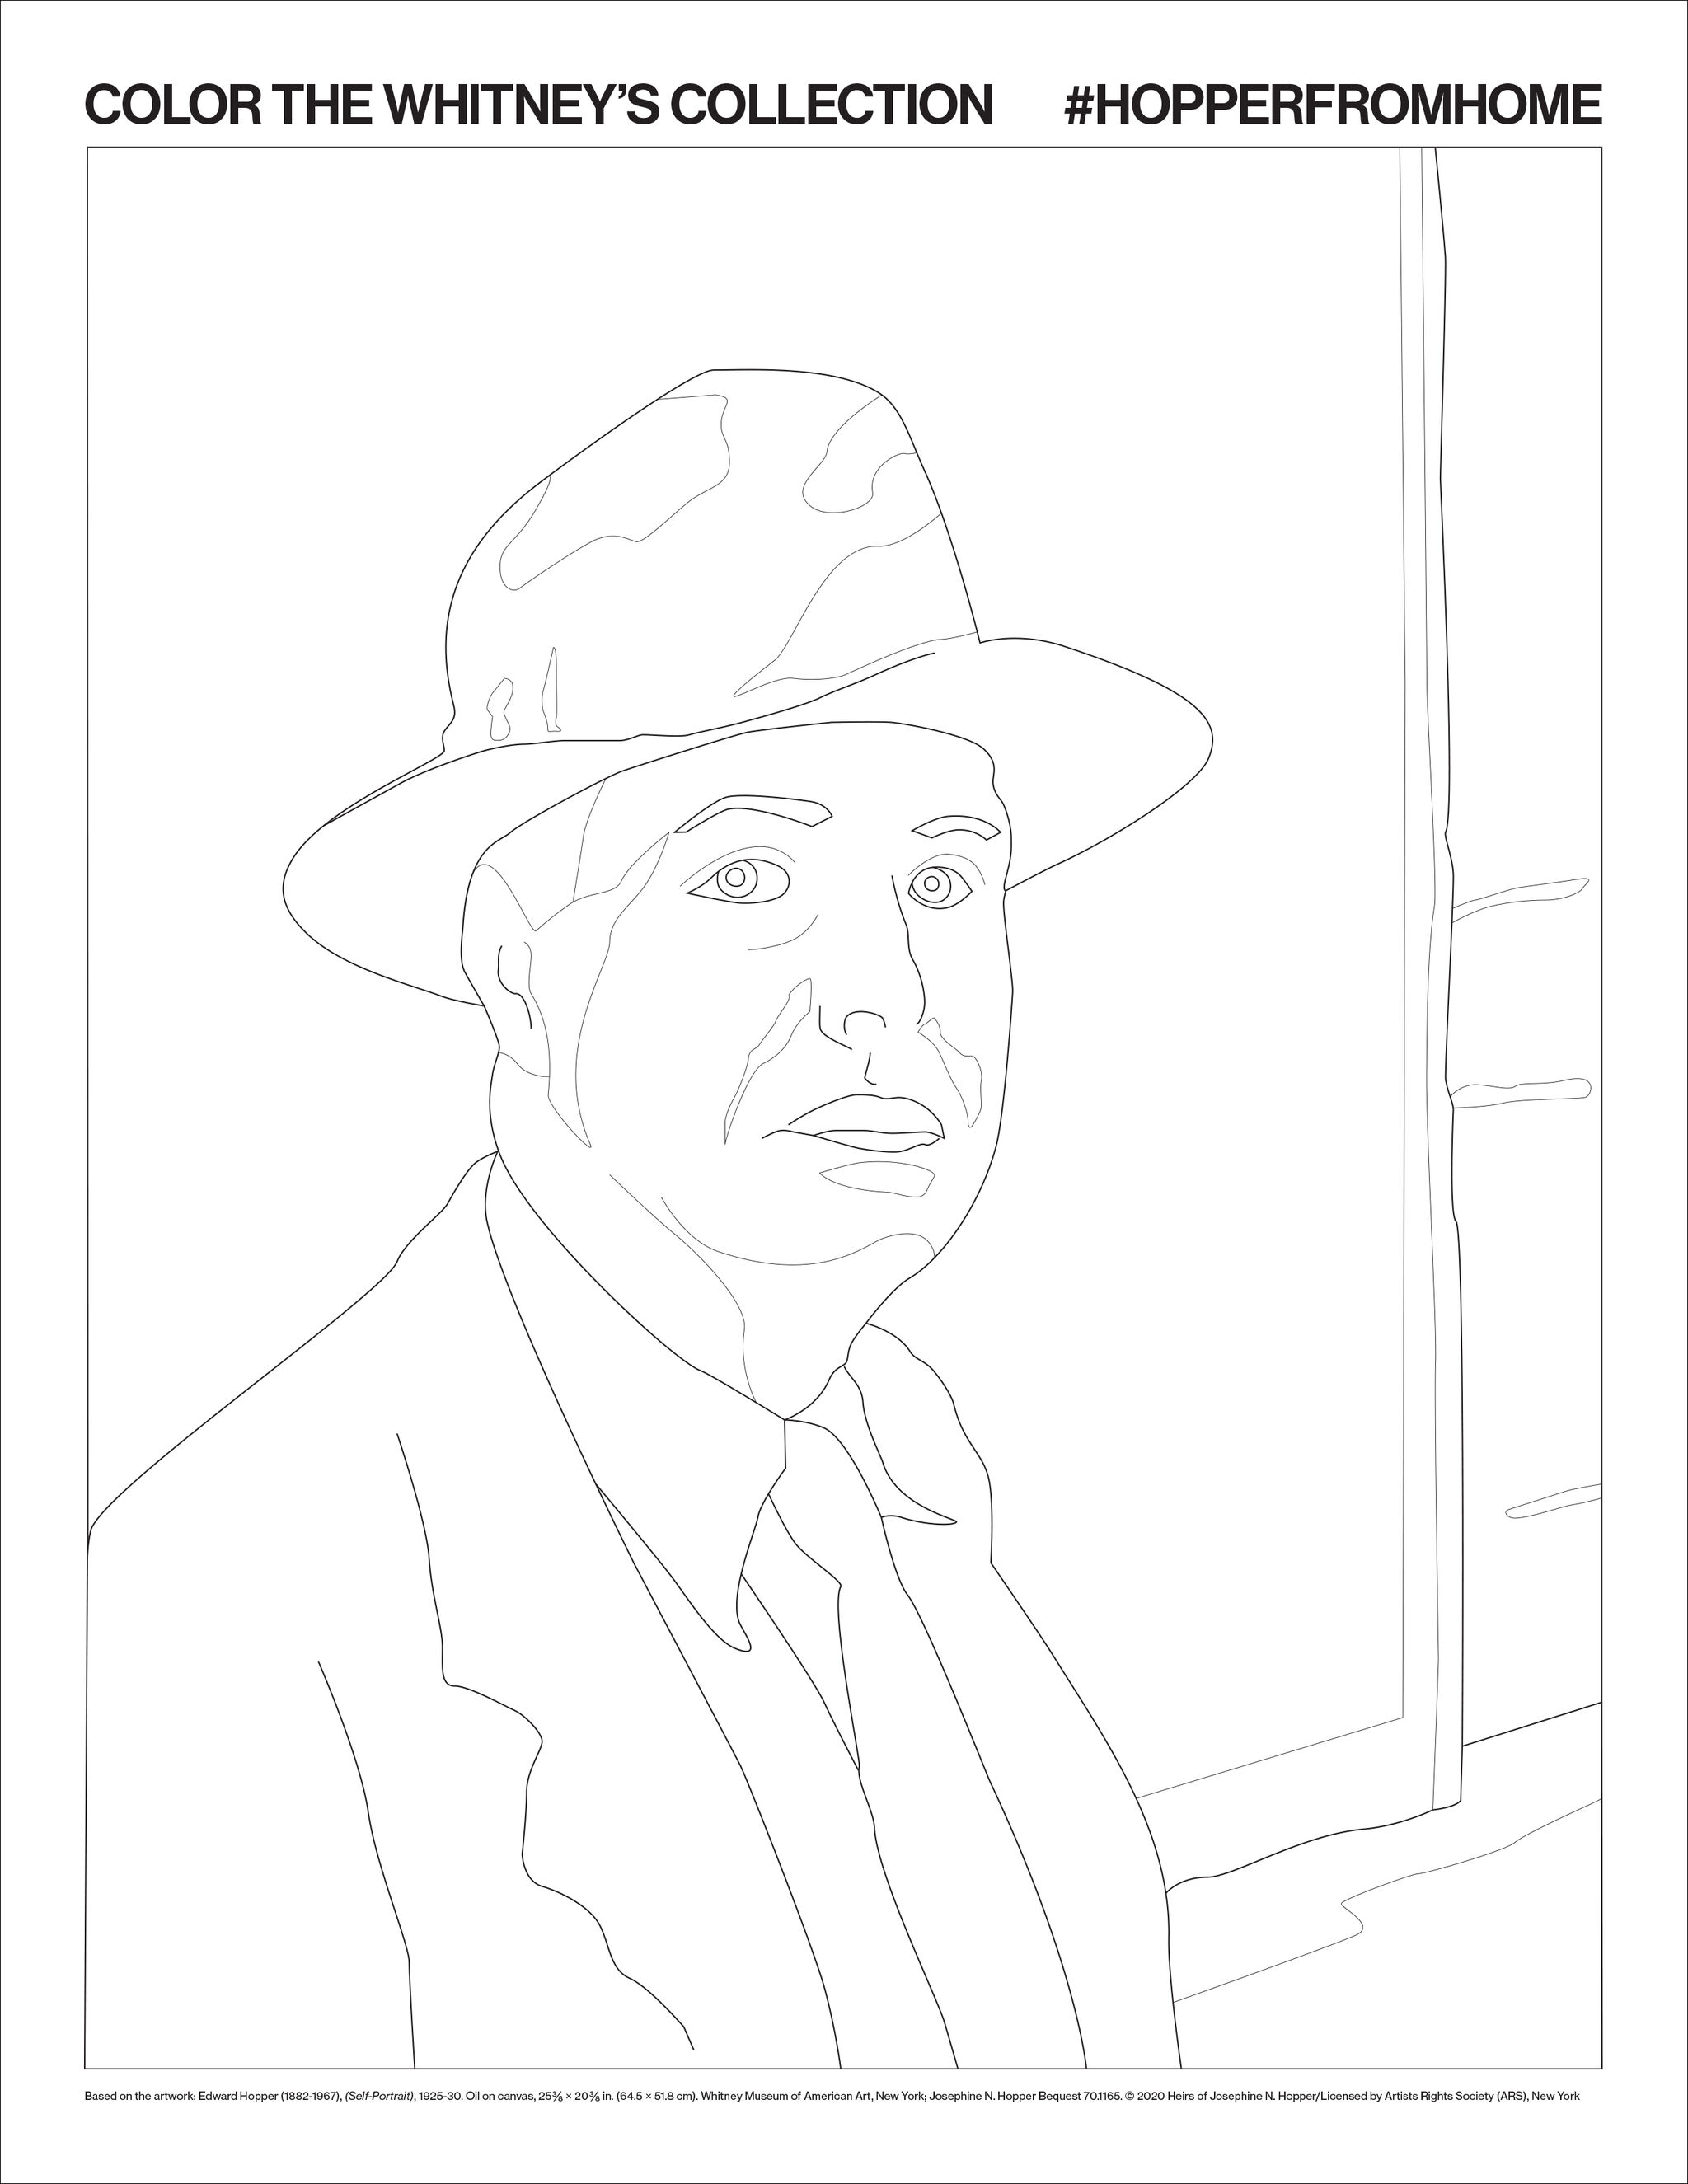 Coloring book page of Edward Hopper's Self-Portrait.